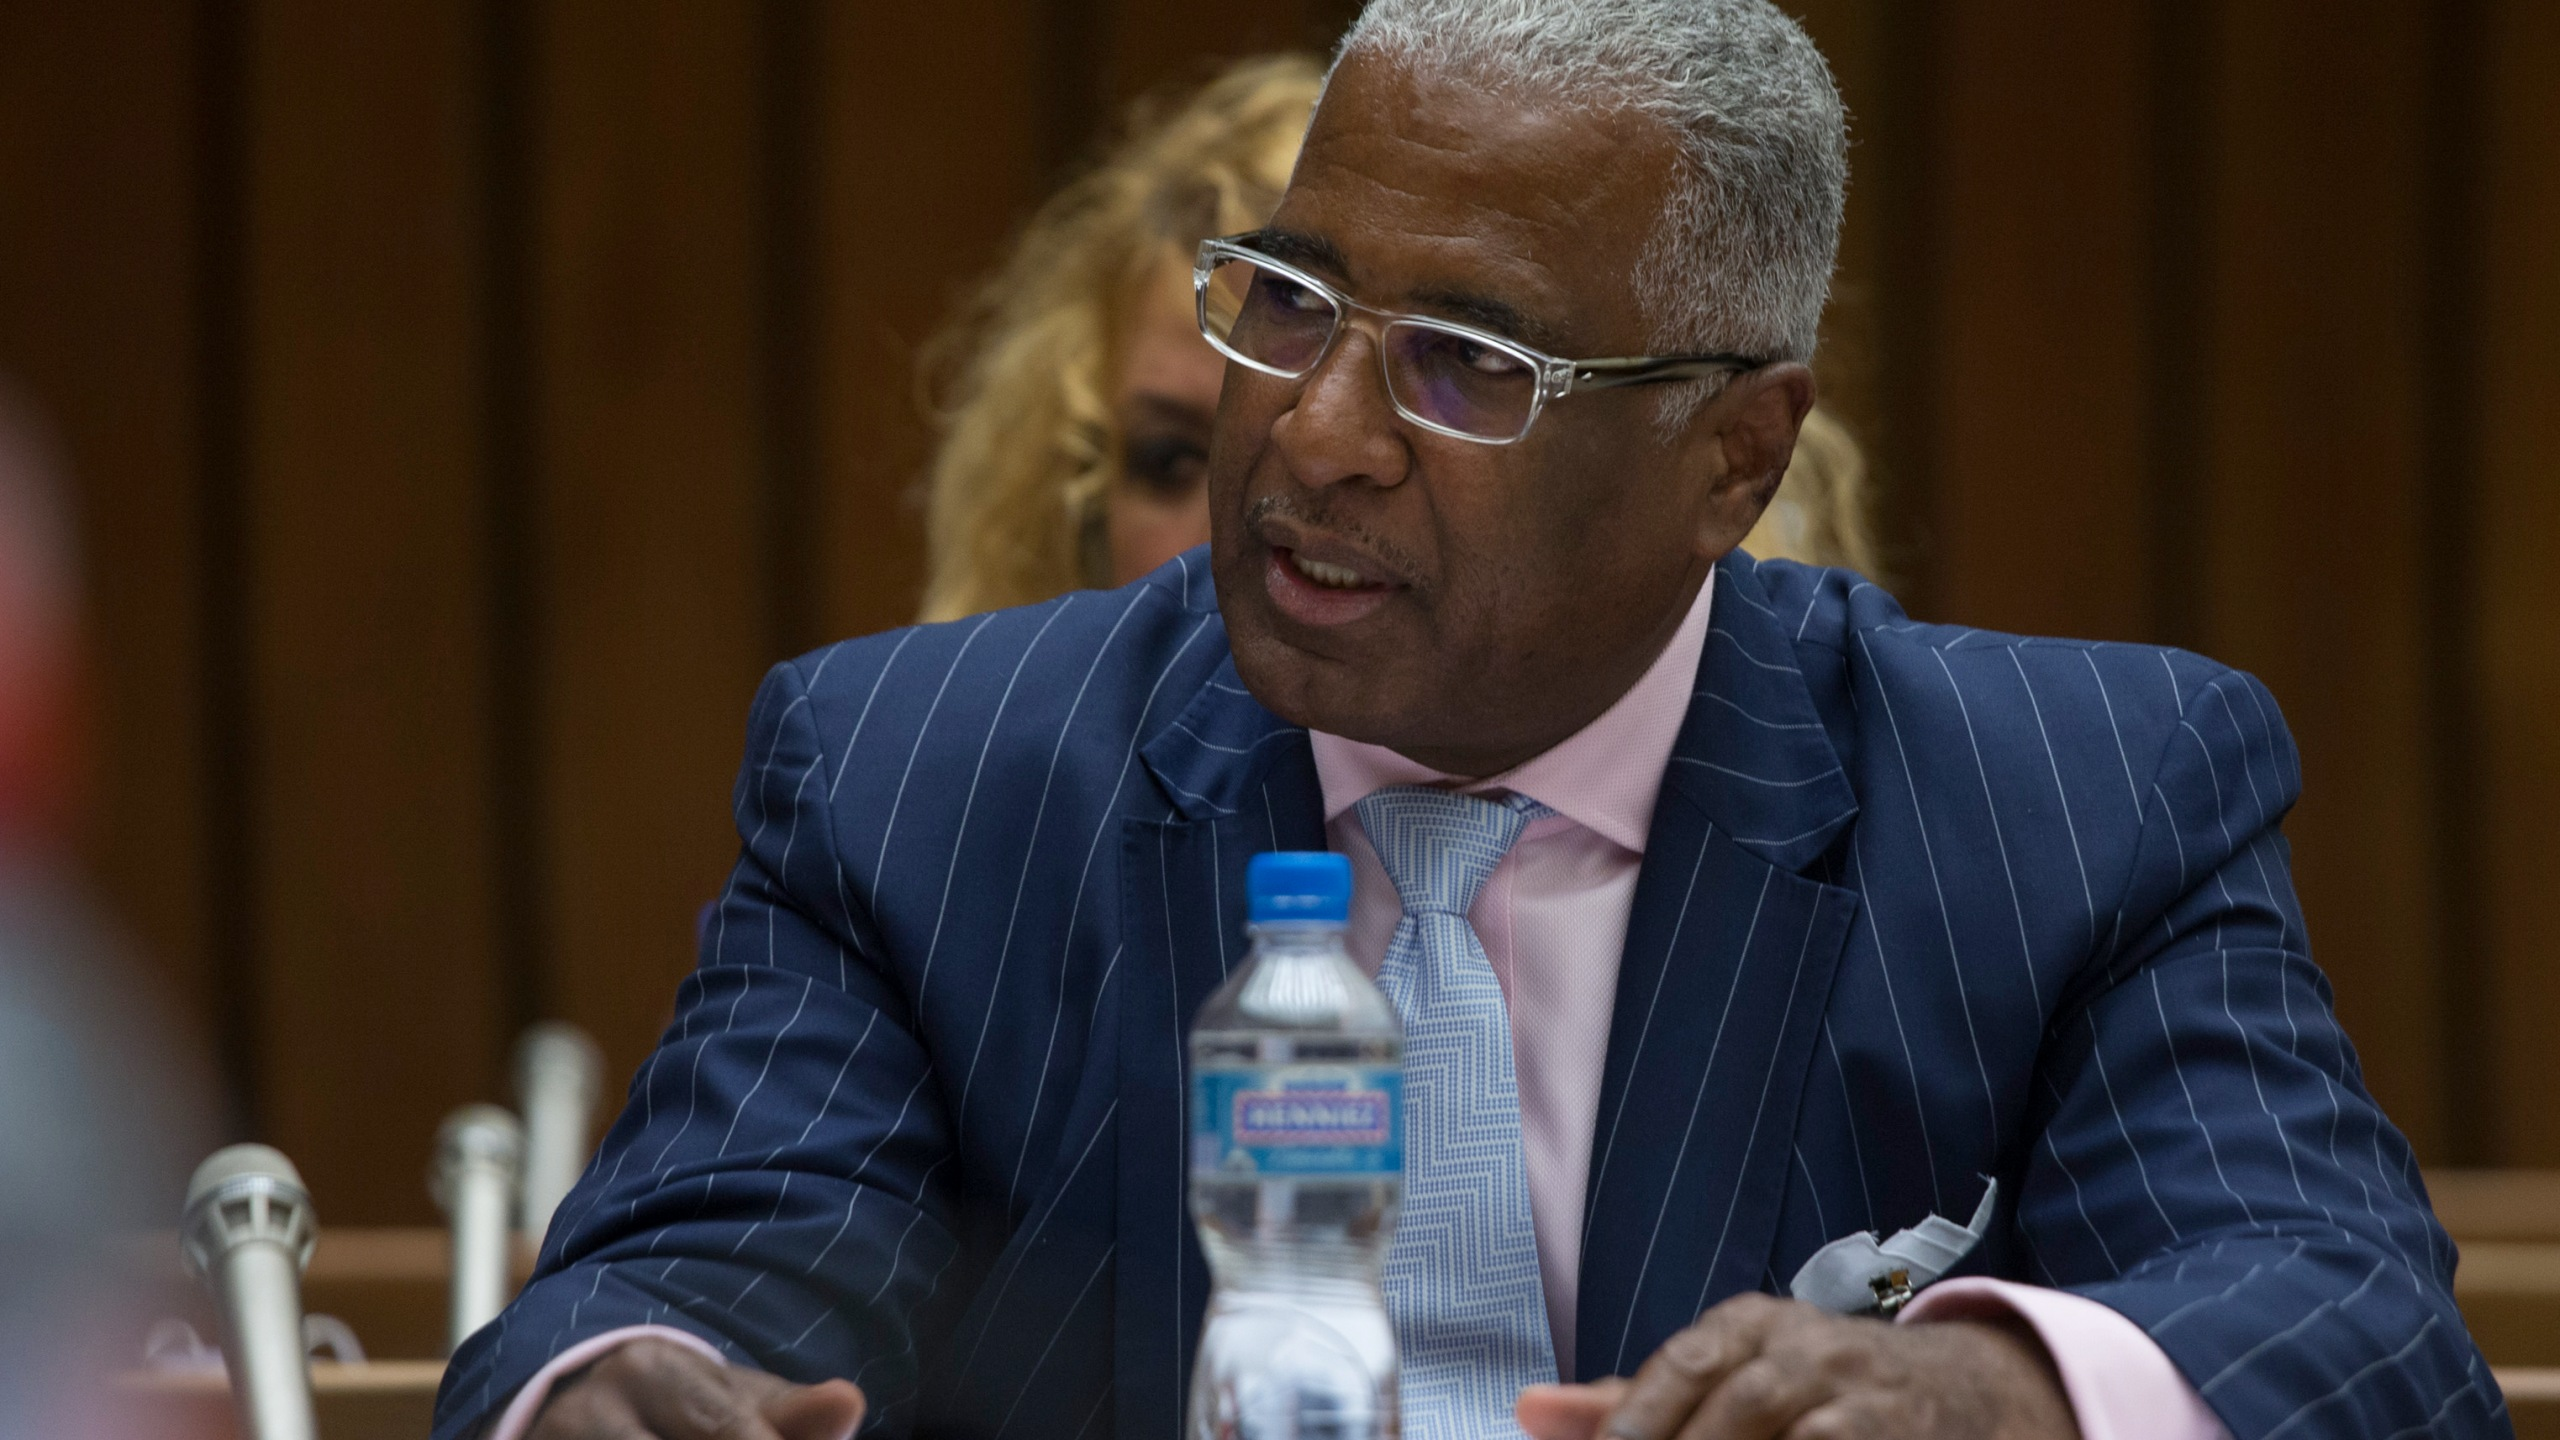 William Bell, Mayor of Birmingham, Alabama, Addresses CERD Commi_112755